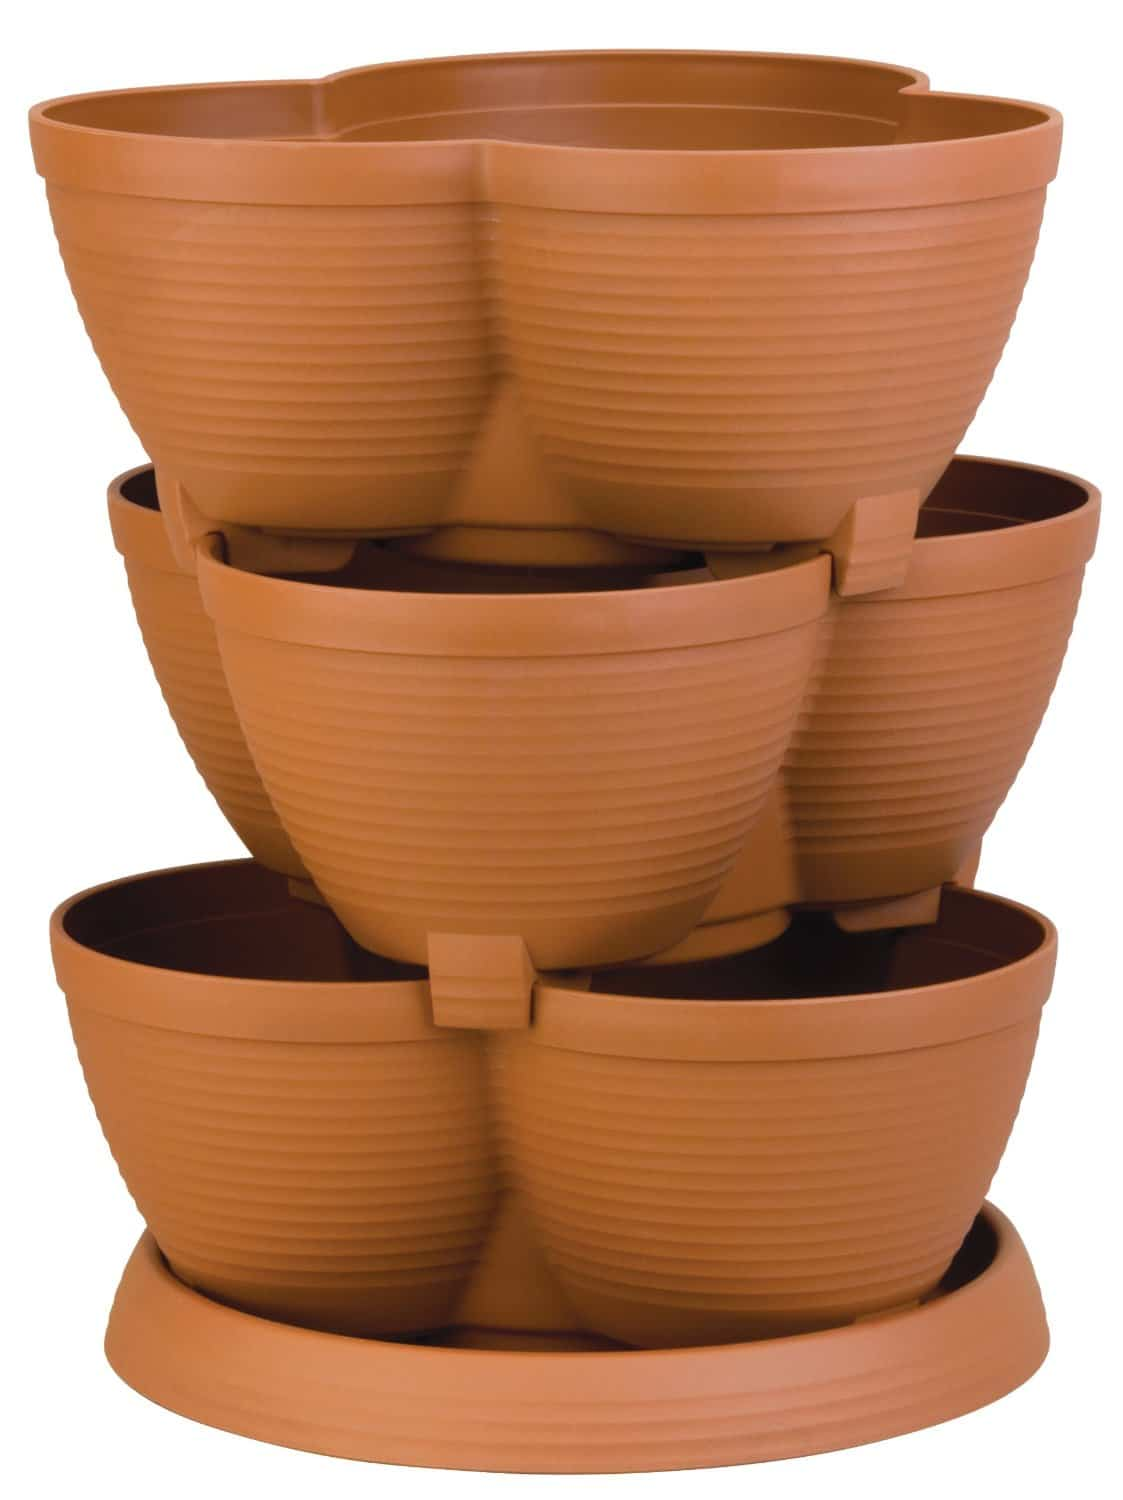 Tiered Herb Pot | 2015 Holiday Gift Guide for Foodies @ FiveHeartHome.com